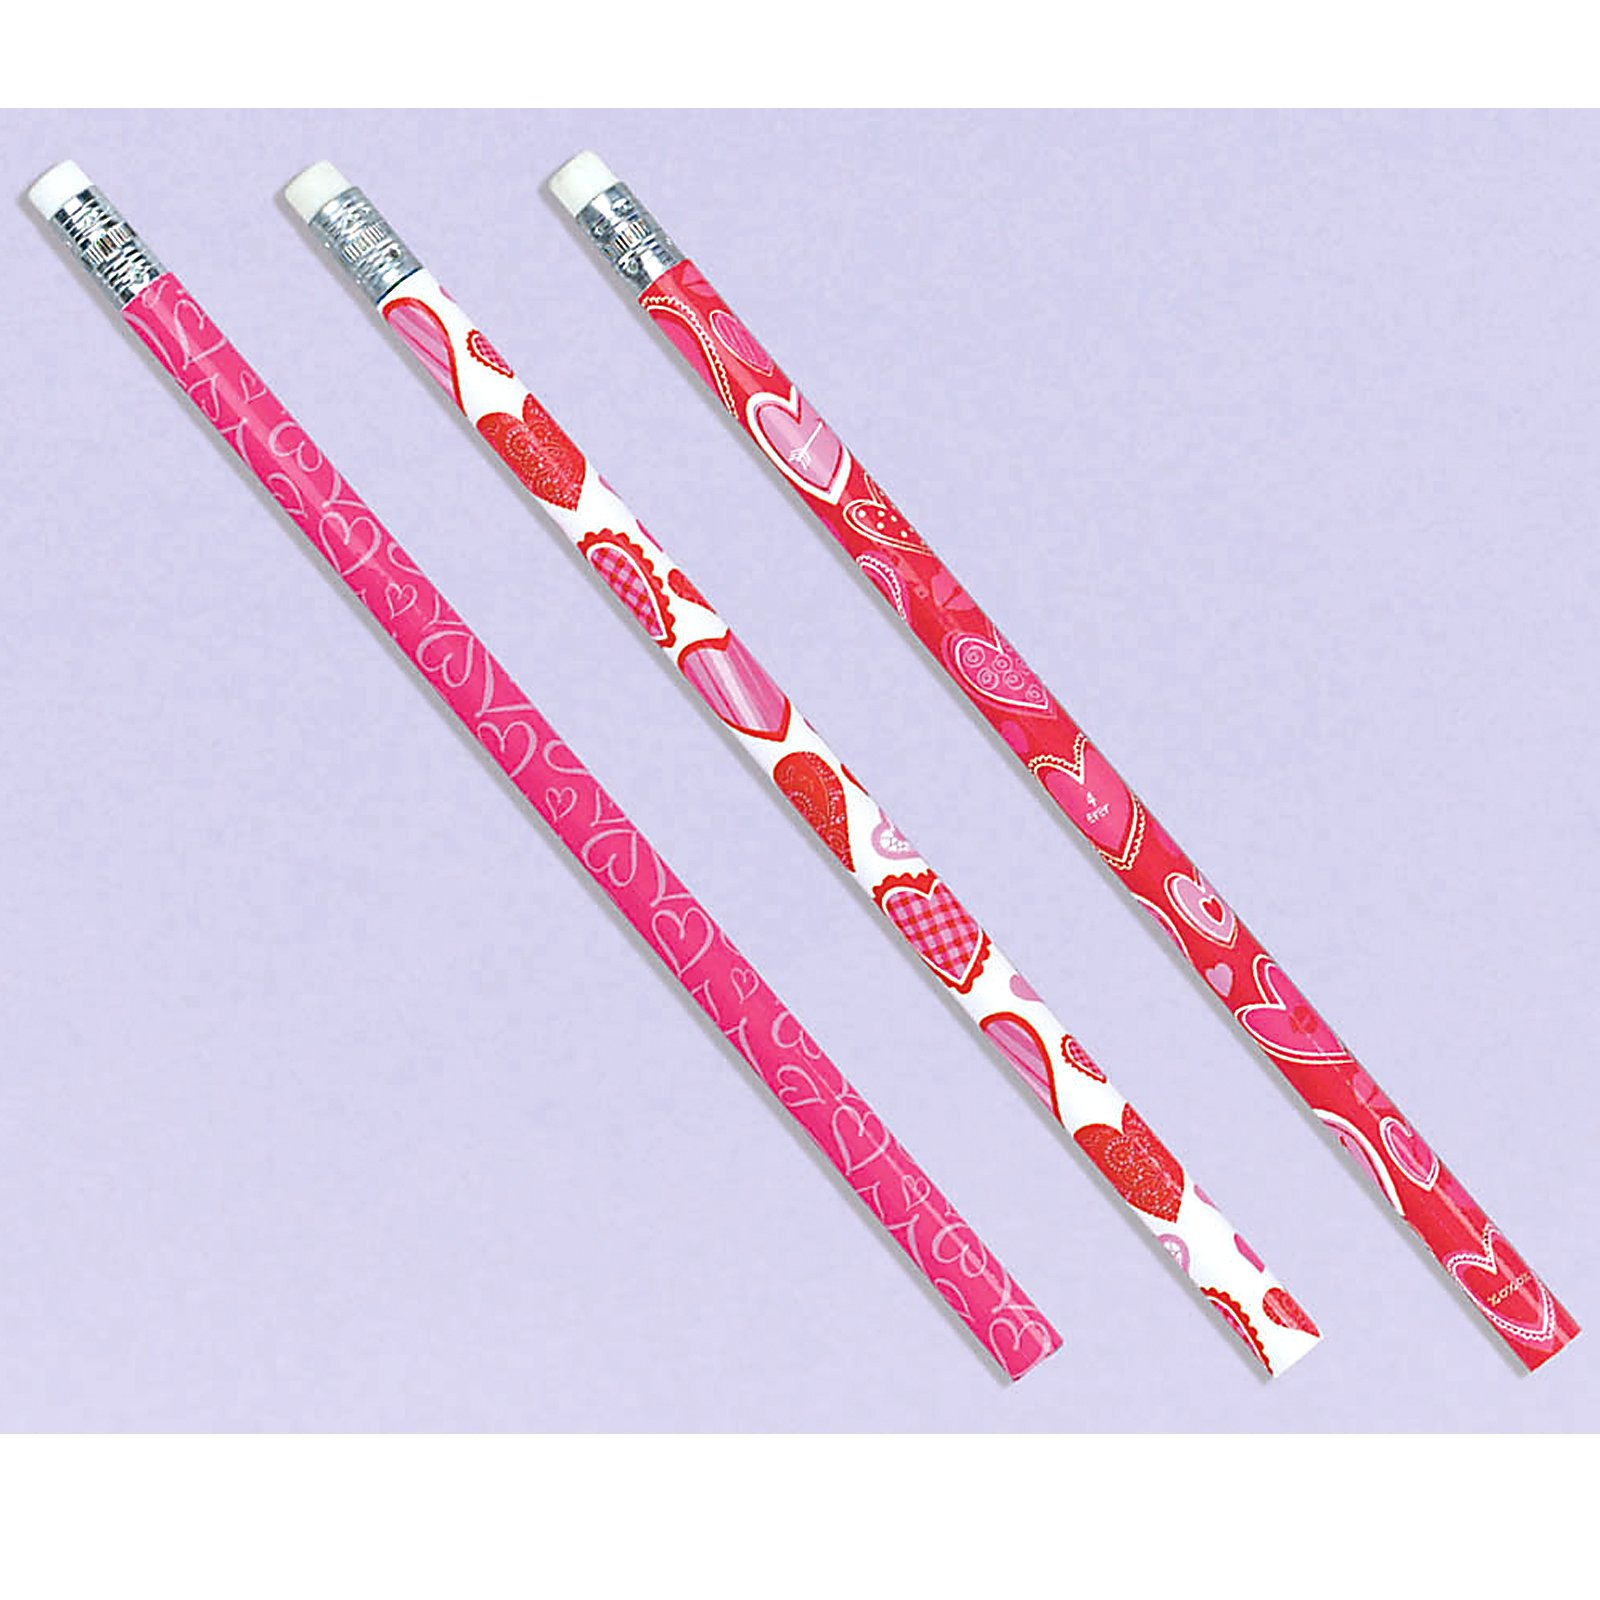 Heart Pencils (24 count)